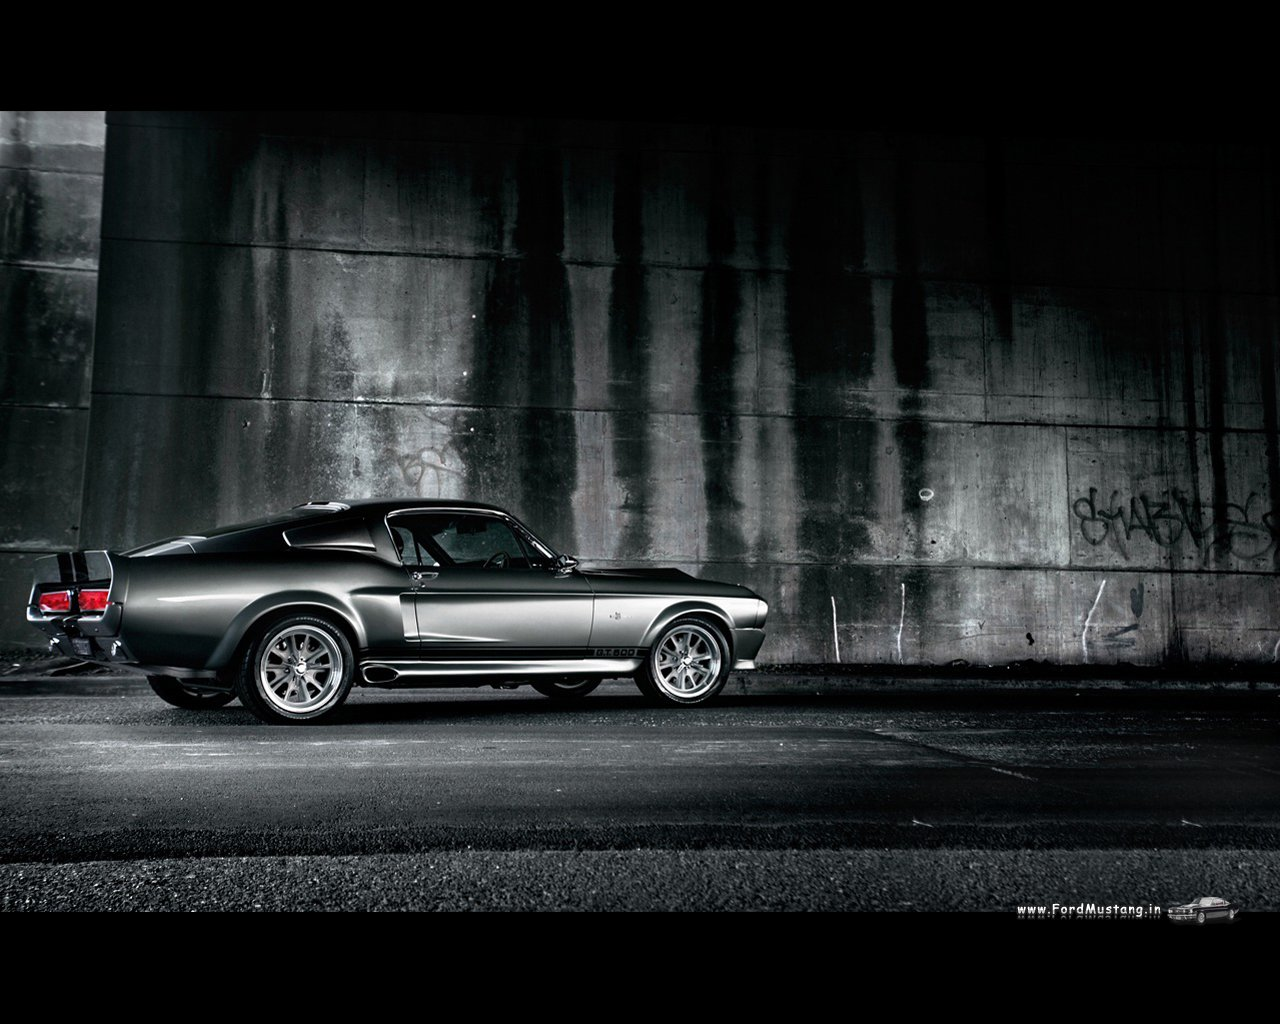 Ford Mustang Shelby Gt500 Eleanor Gone In 60 Seconds Wallpapers